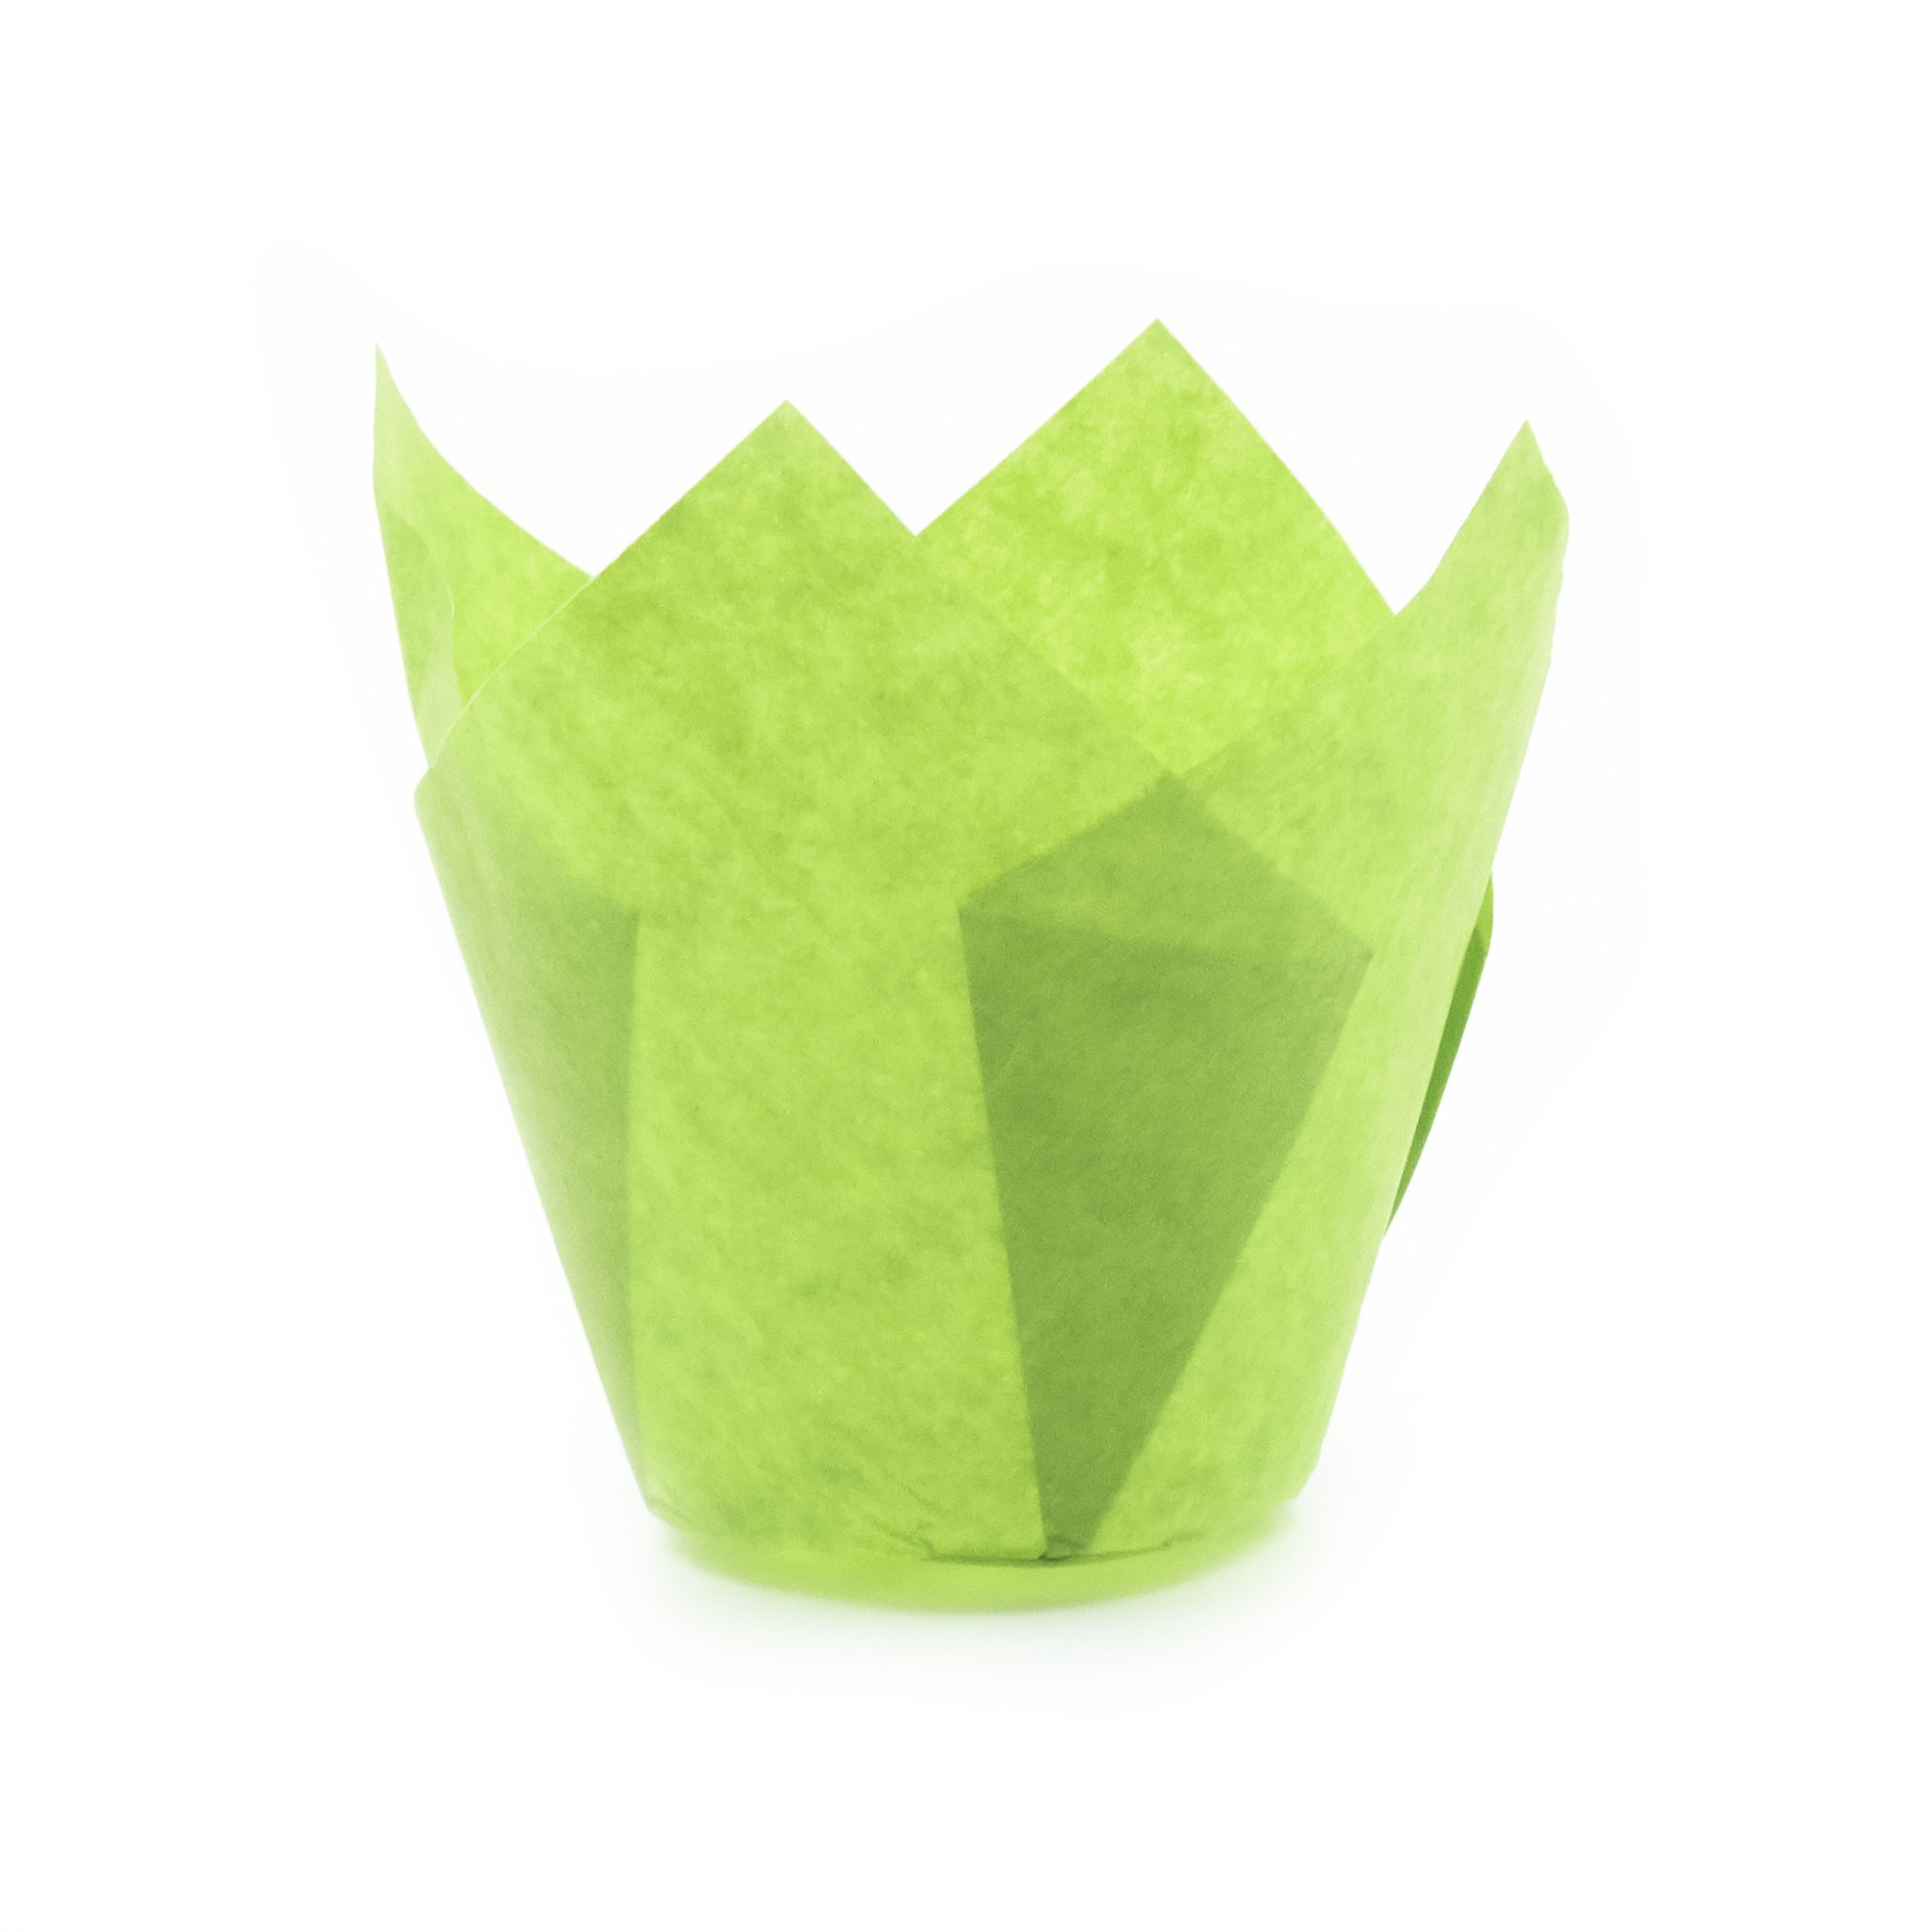 Green Tulip Baking Cups, Medium Size, Pack of 3200